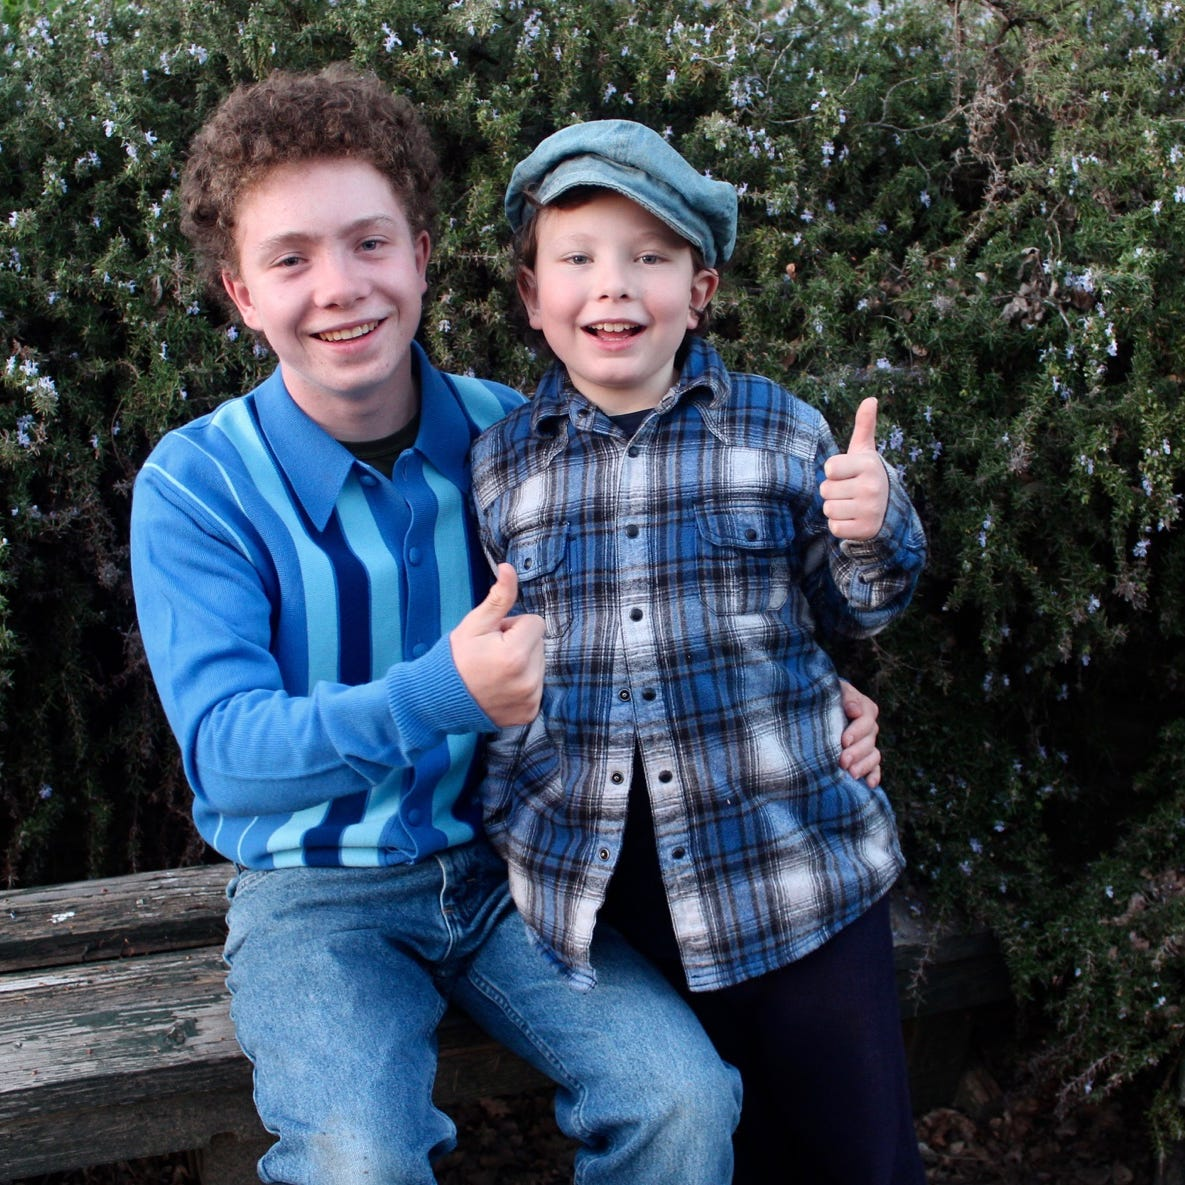 Tulare County brothers' YouTube channel a hit with preschool set